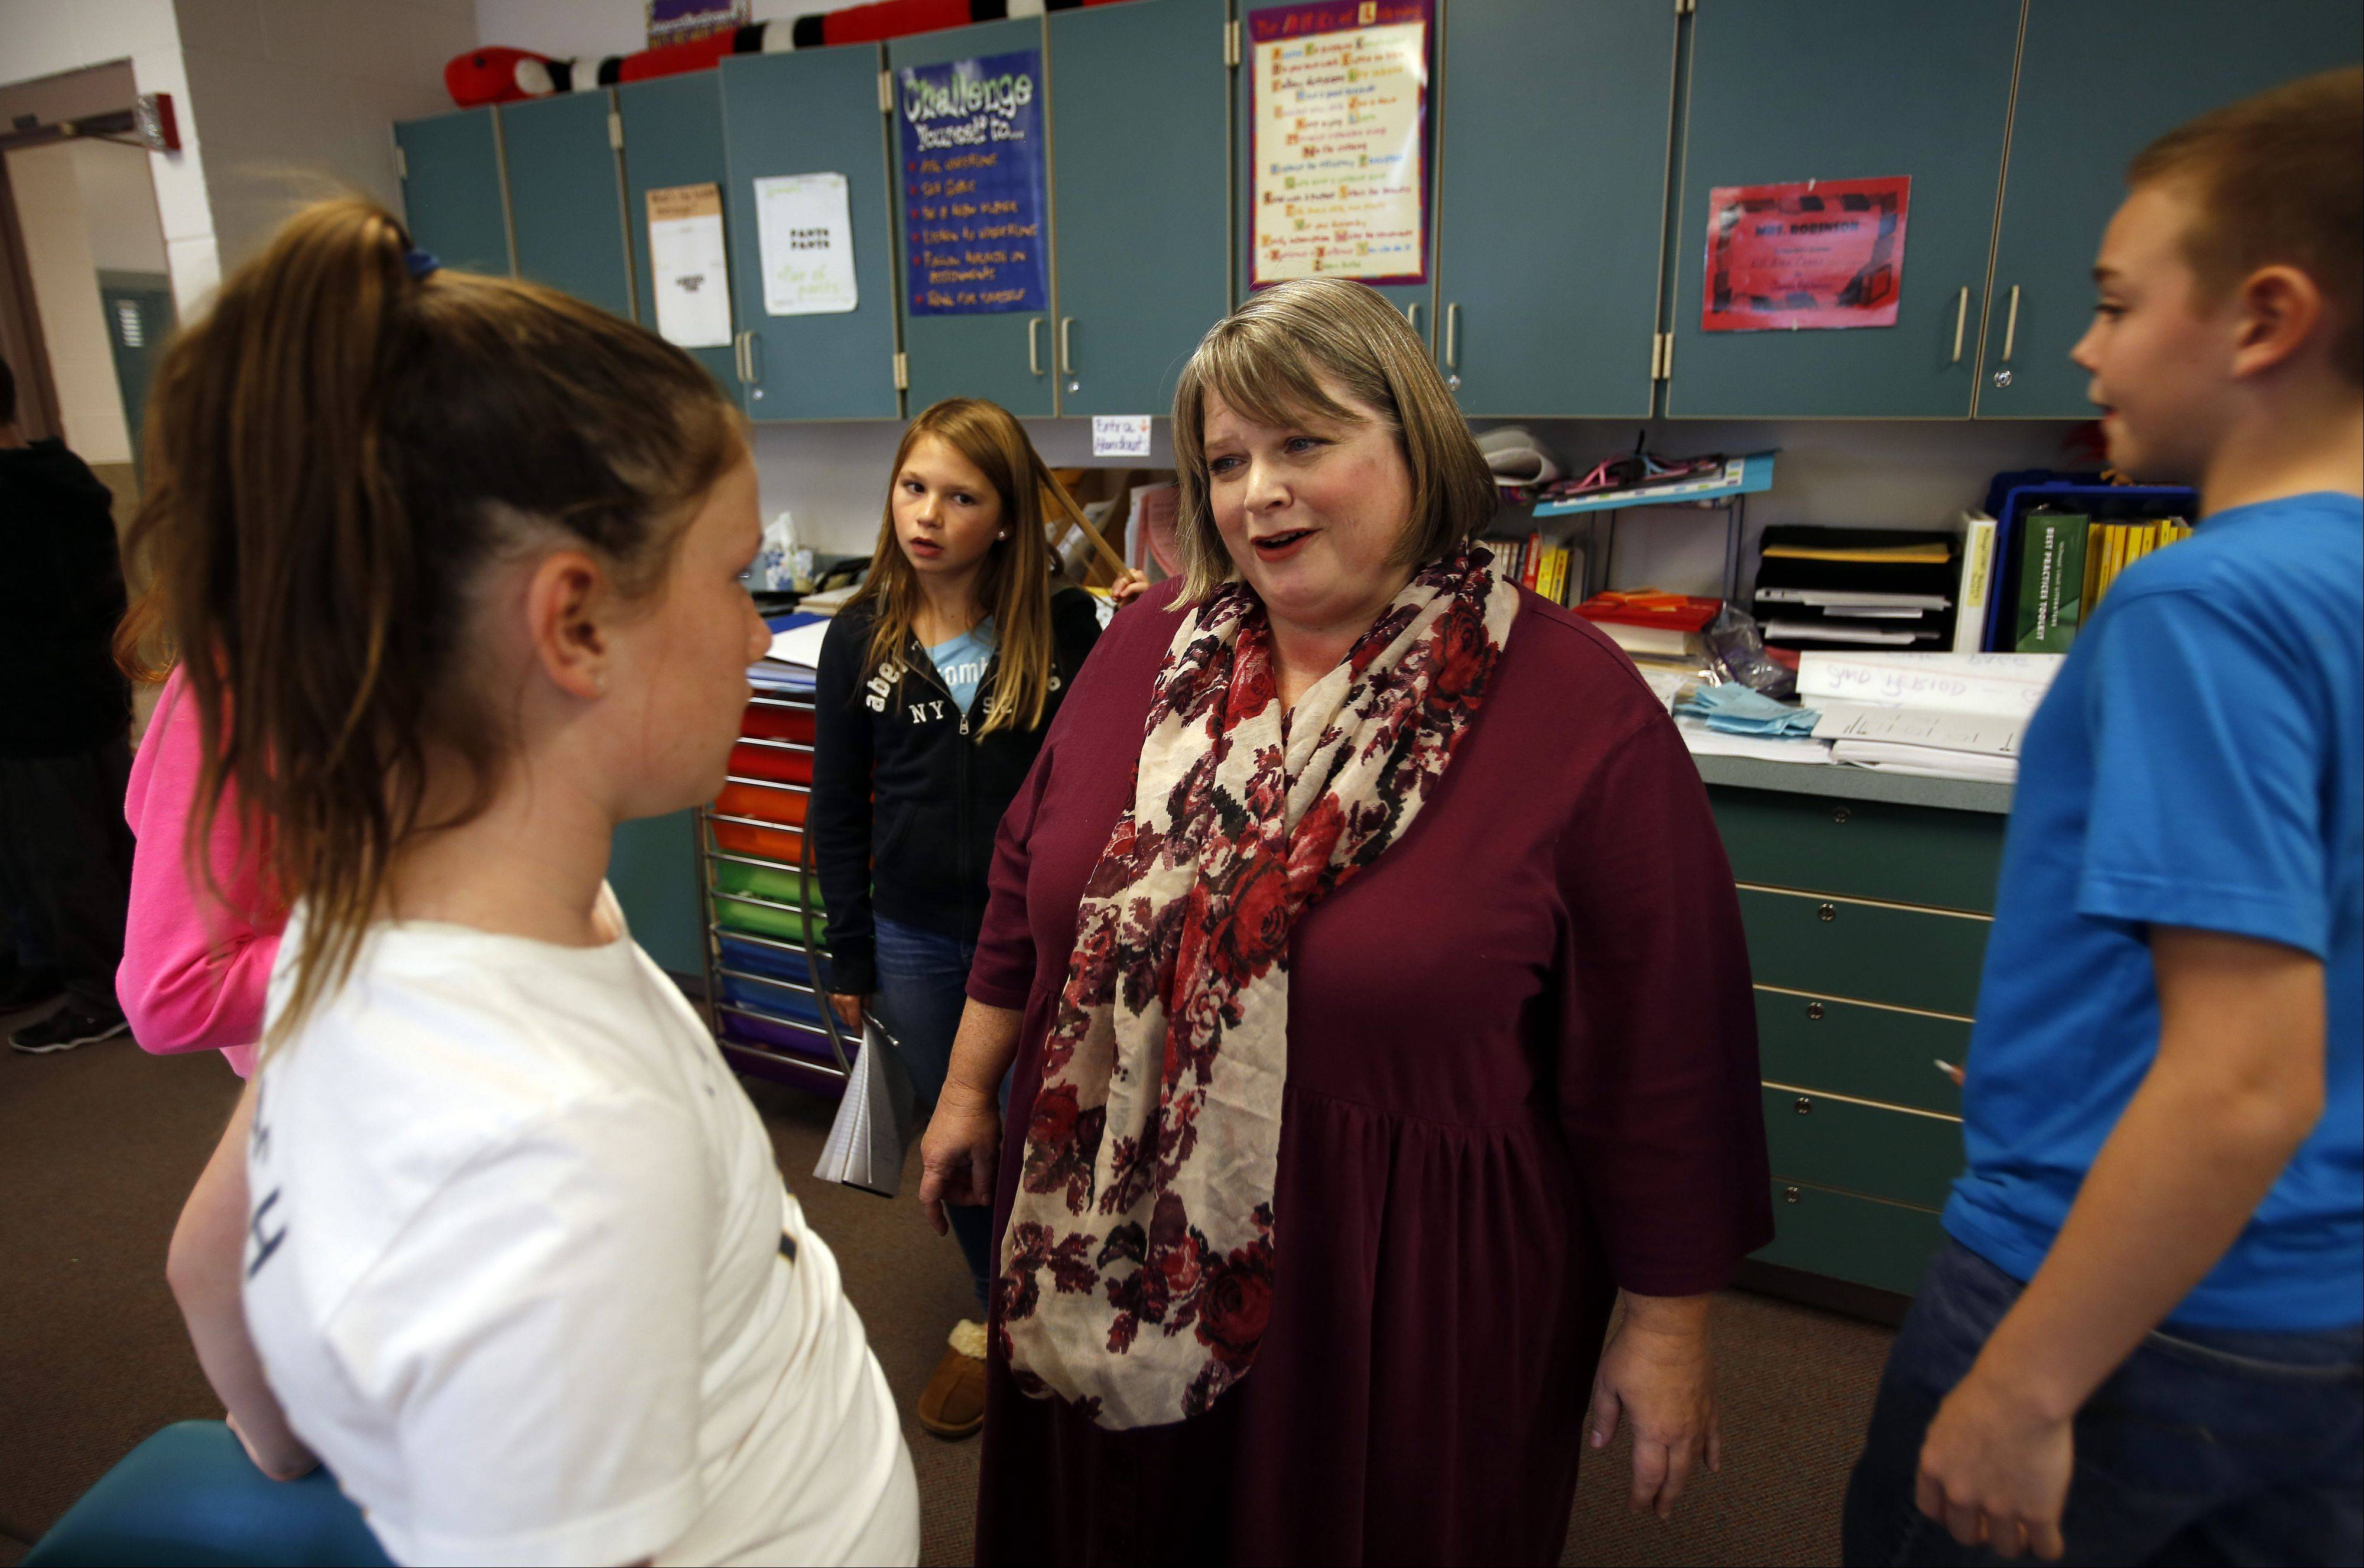 Tina King, who teaches math at Wredling Middle School in St. Charles, finds taking a collaborative approach works best.